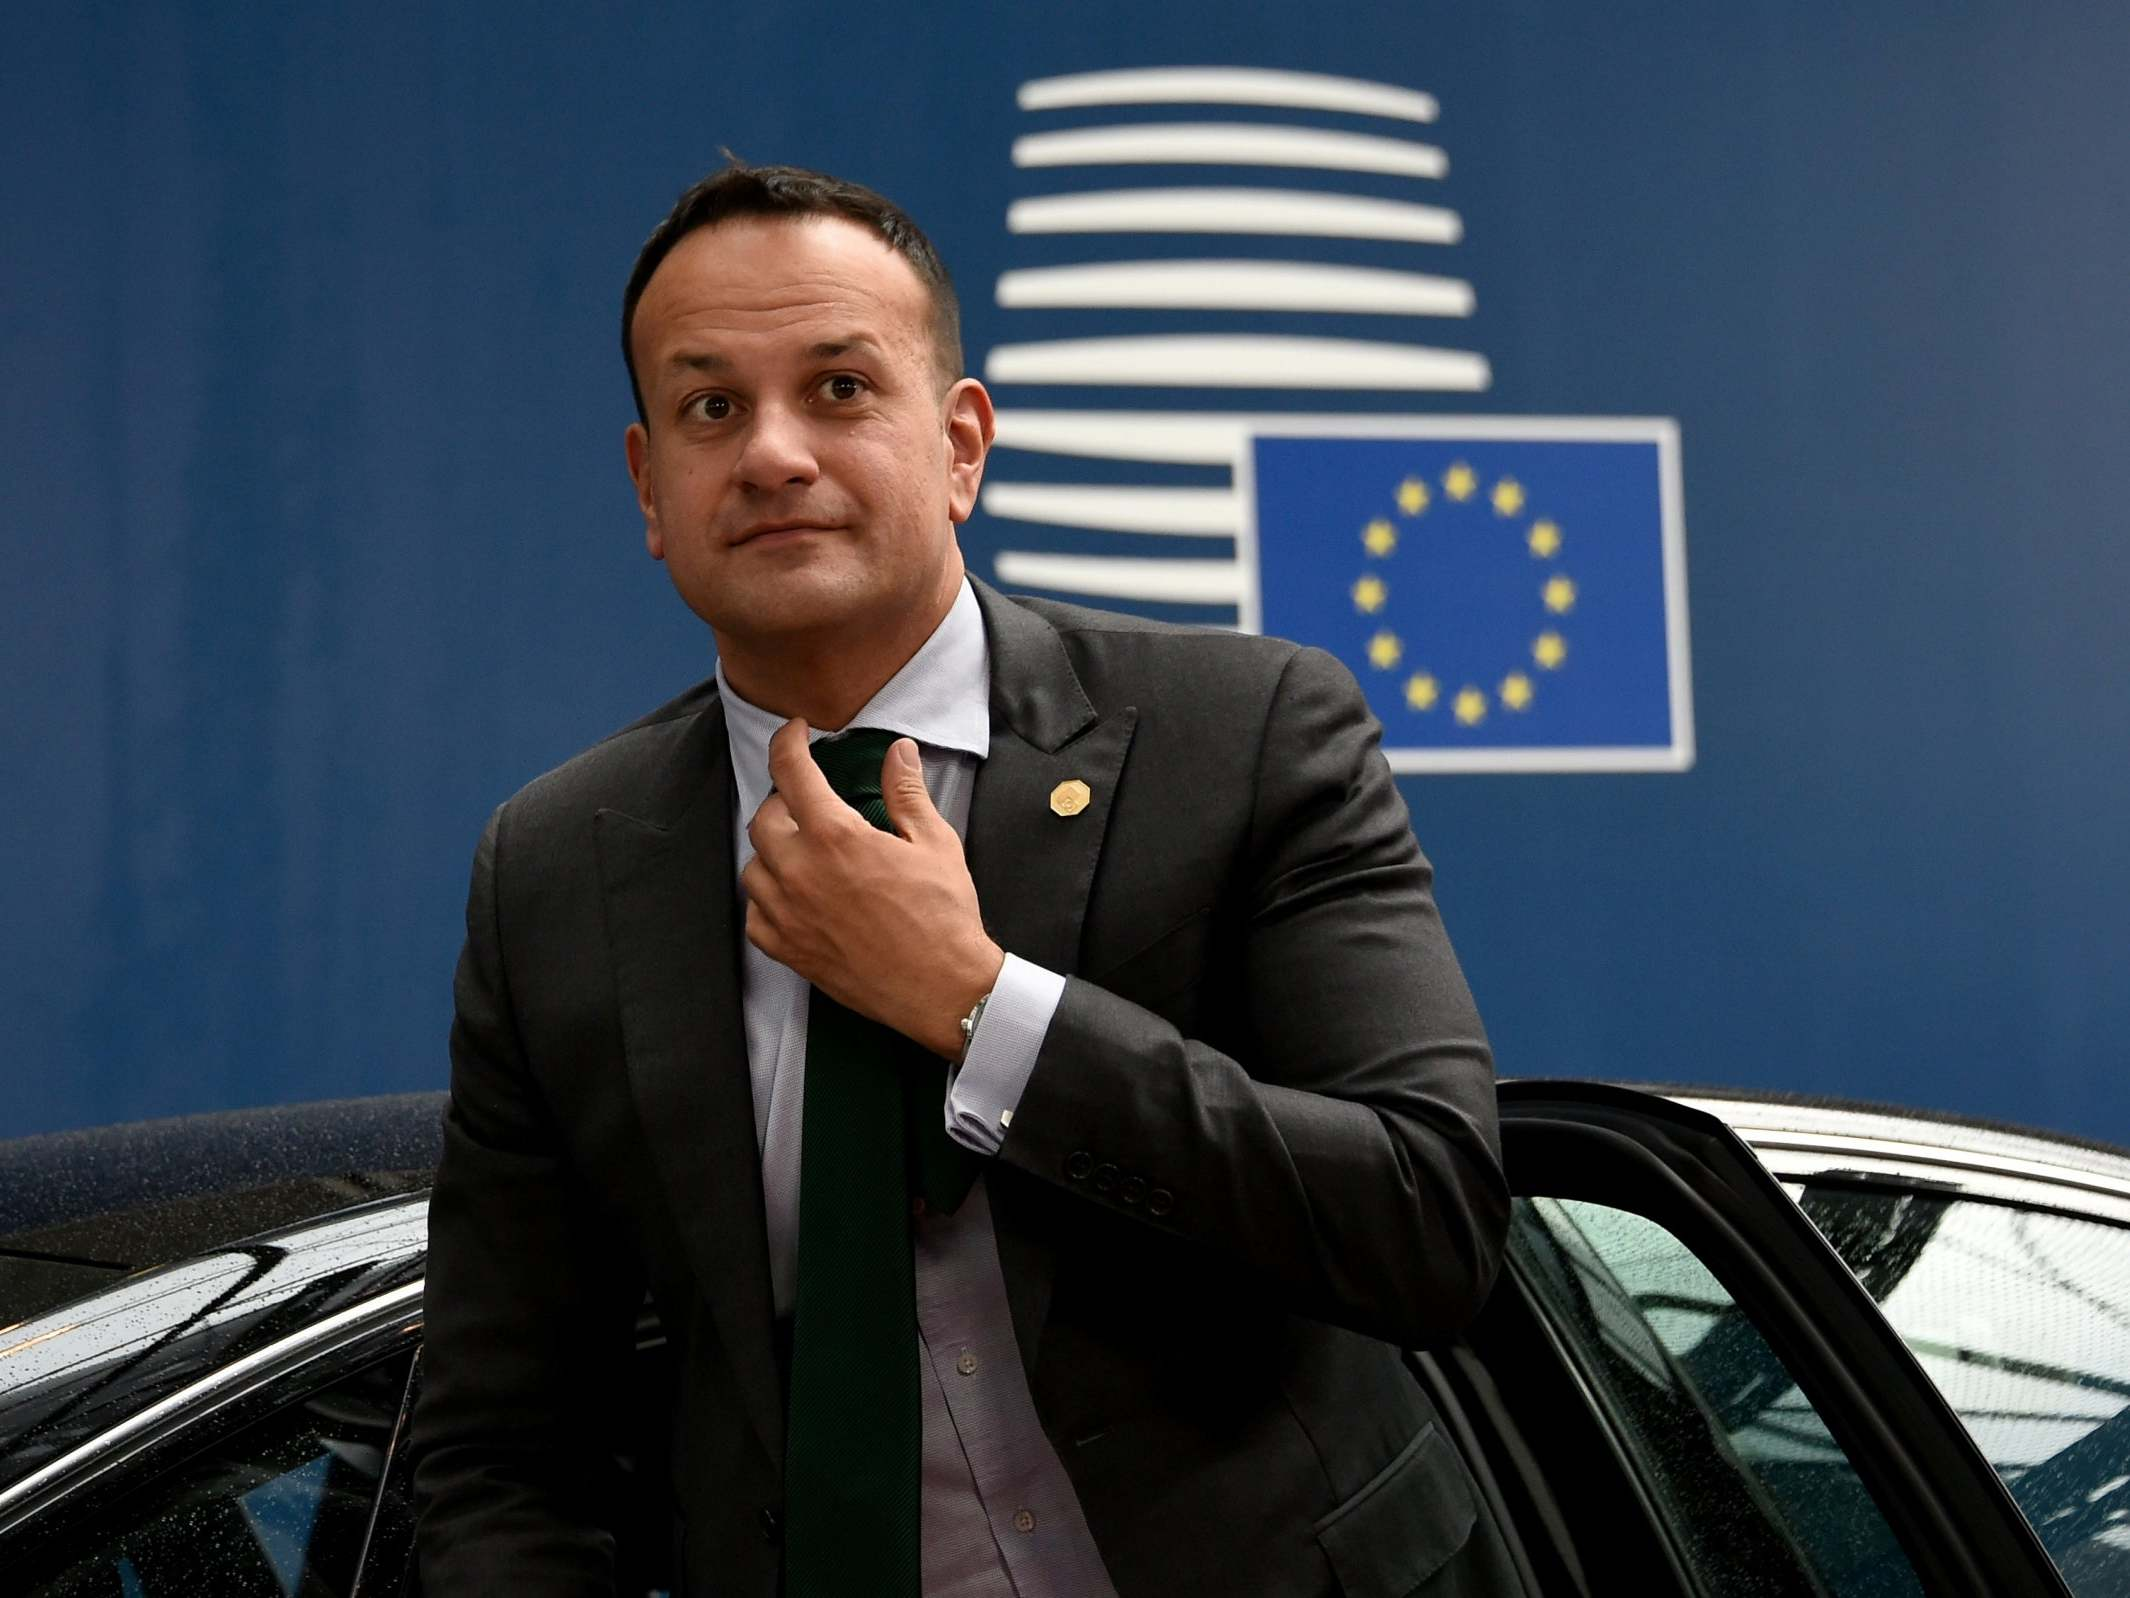 Brexit: Scrapping Irish border backstop effectively the same as no deal, says Leo Varadkar